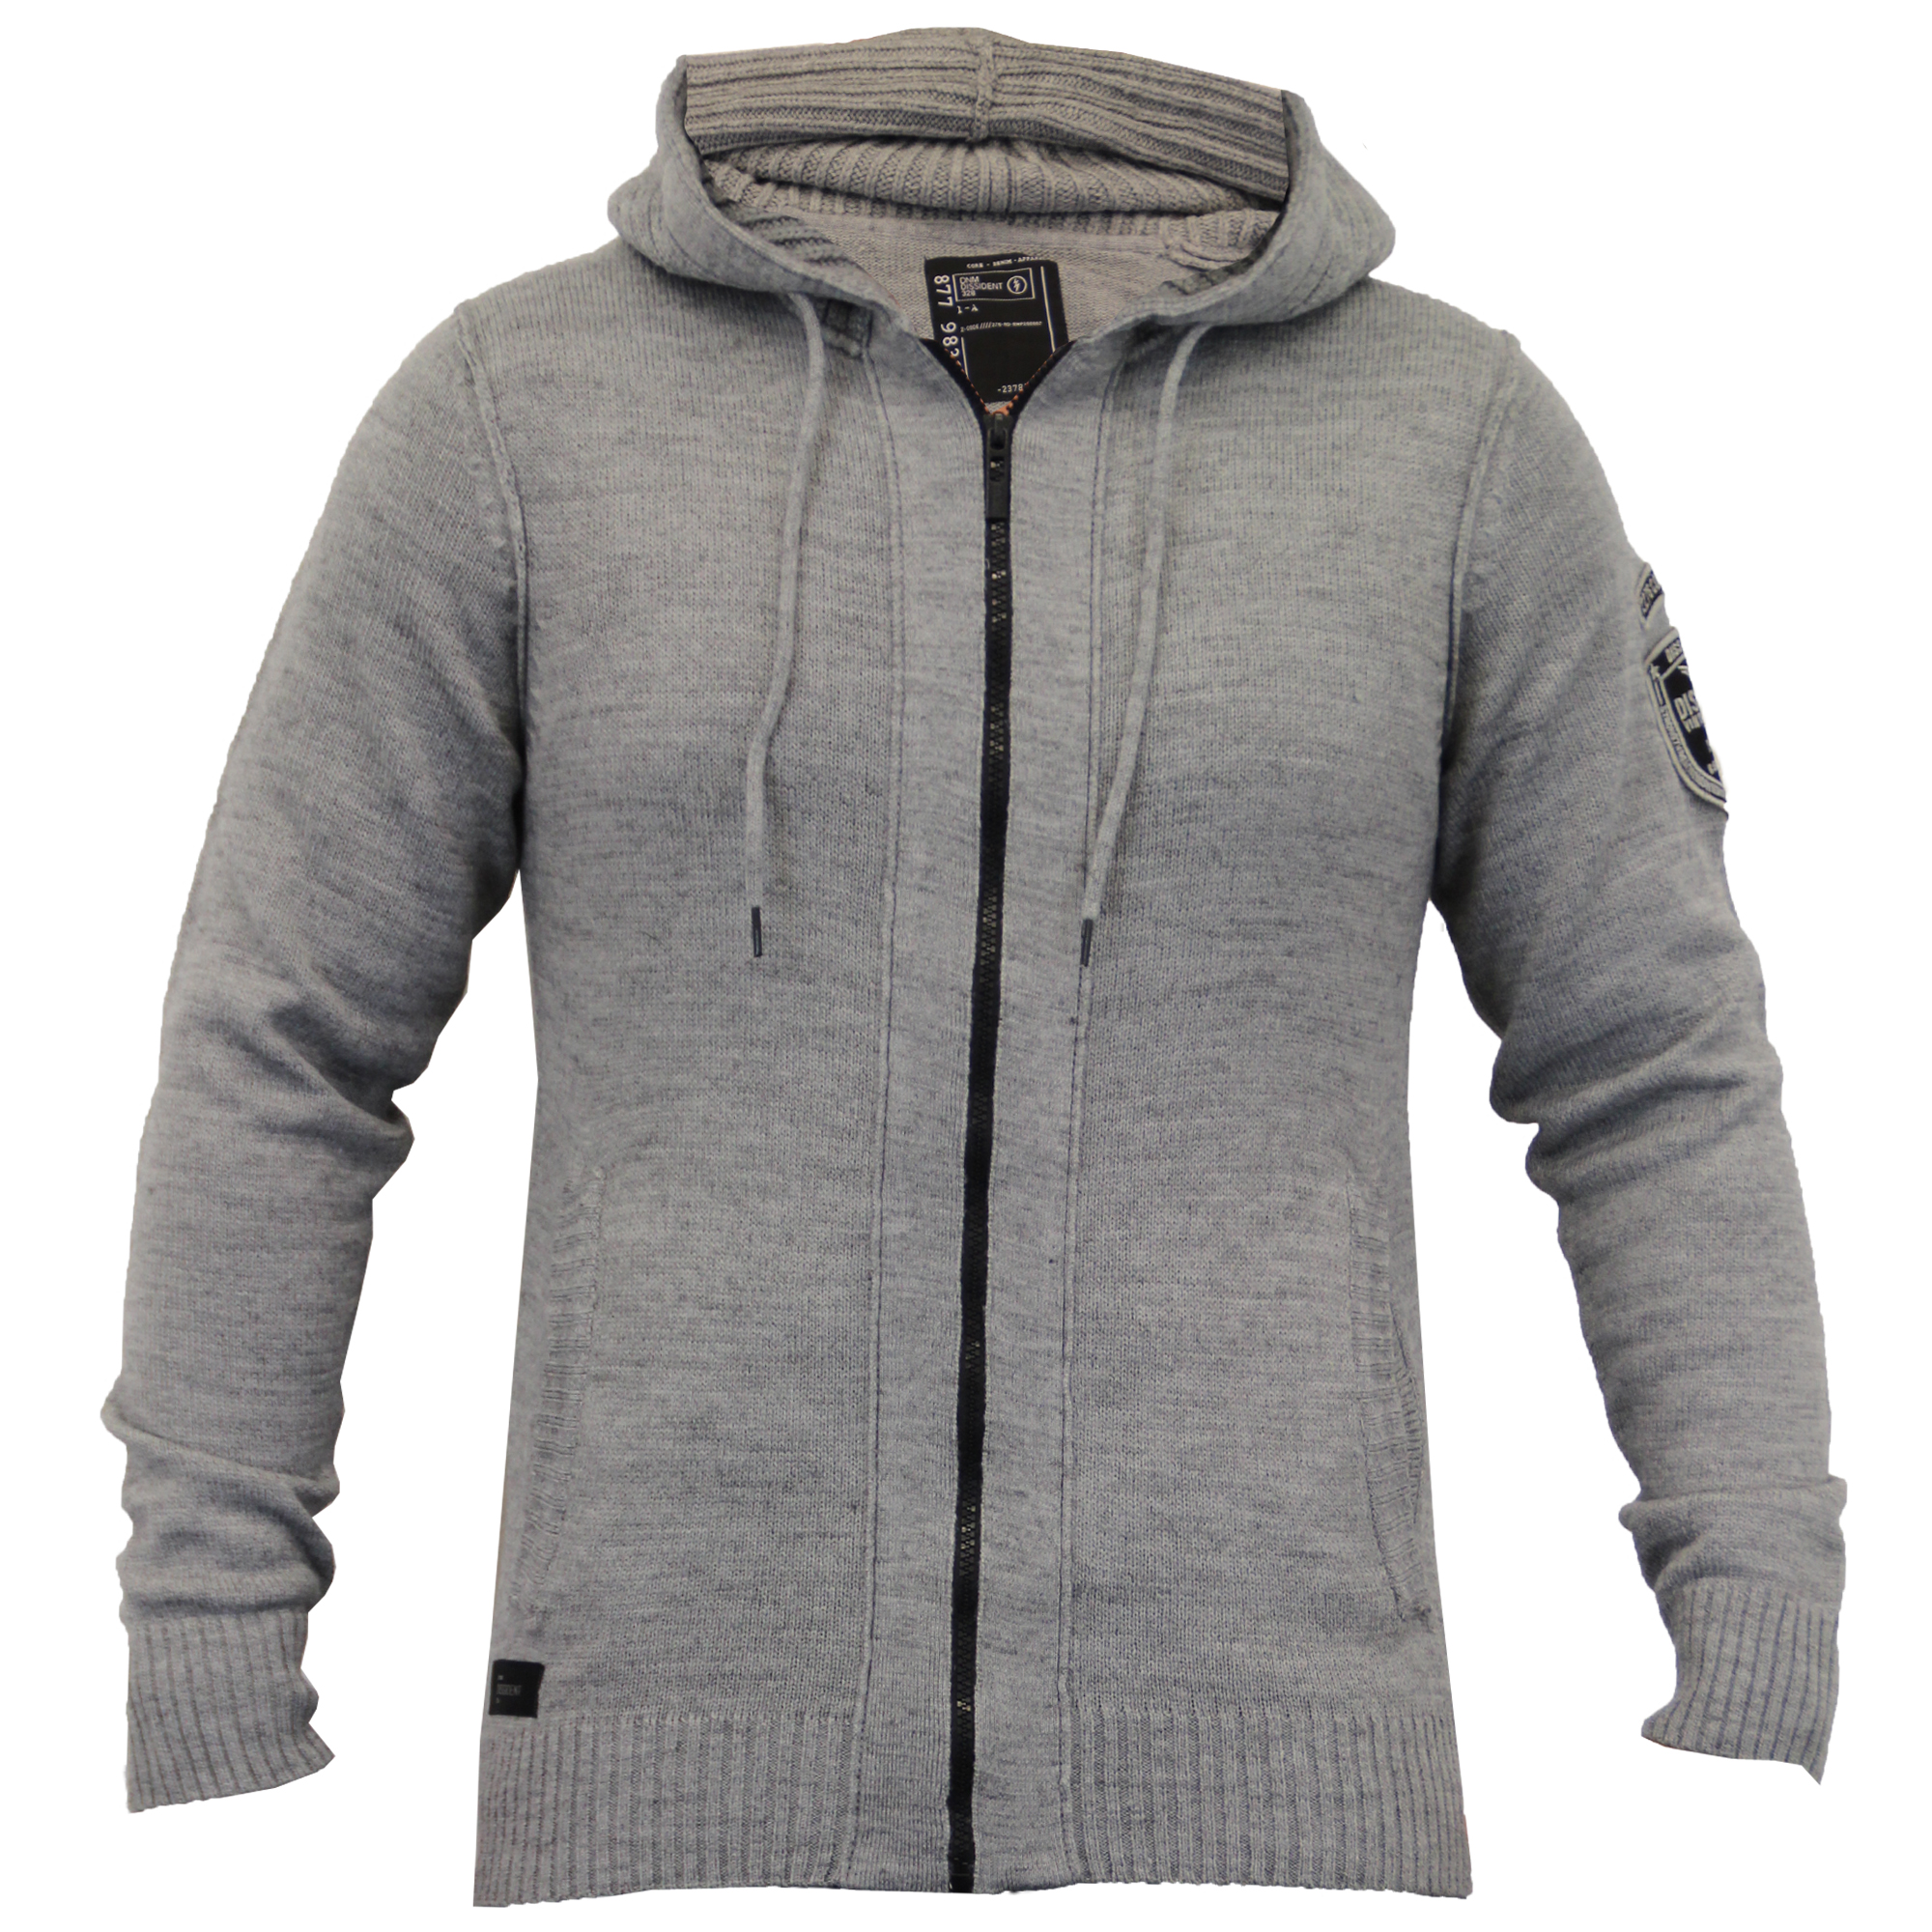 Find best value and selection for your New Plain Mens Hoodie American Fleece Zip Up Jacket Sweatshirt Hooded Top XS XXL search on eBay. World's leading marketplace.